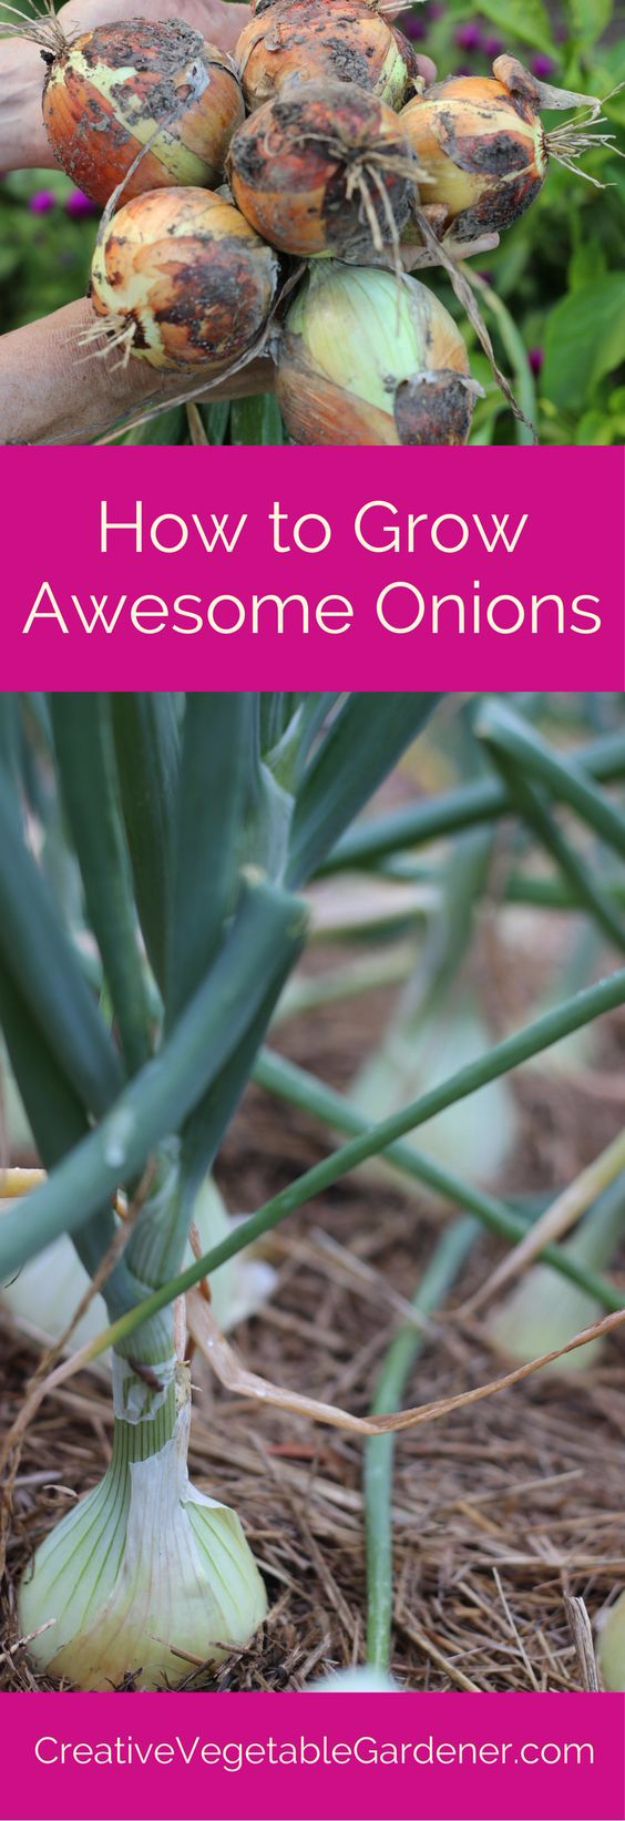 DIY Spring Gardening Projects - Plant And Grow Onions - Cool and Easy Planting Tips for Spring Garden - Step by Step Tutorials for Growing Seeds, Plants, Vegetables and Flowers in You Yard - DIY Project Ideas for Women and Men - Creative and Quick Backyard Ideas For Summer